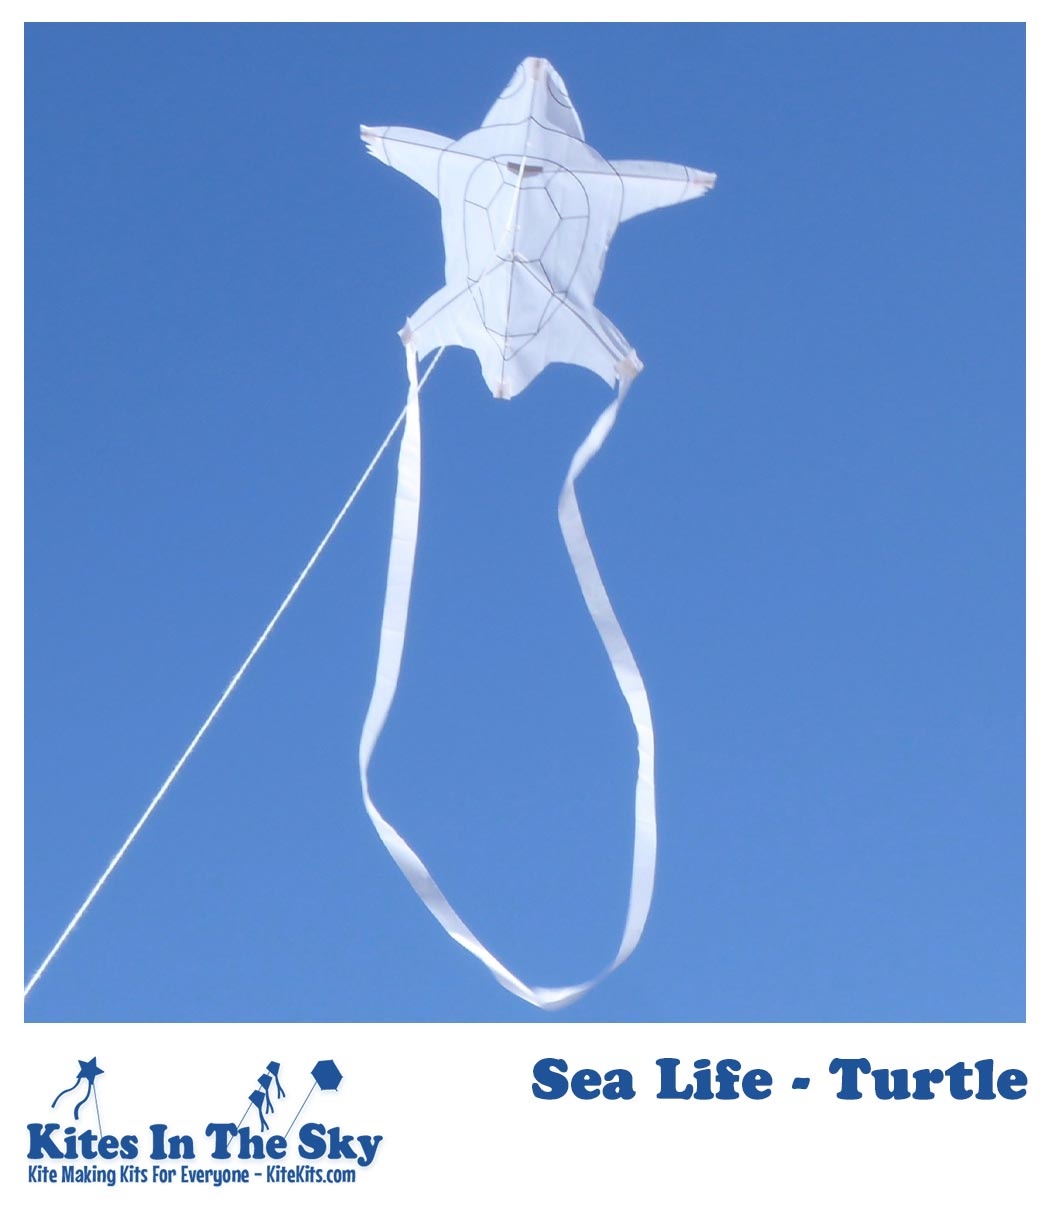 Sea Life - Turtle Kite Kit (1pk-4pk) - Kites In The Sky